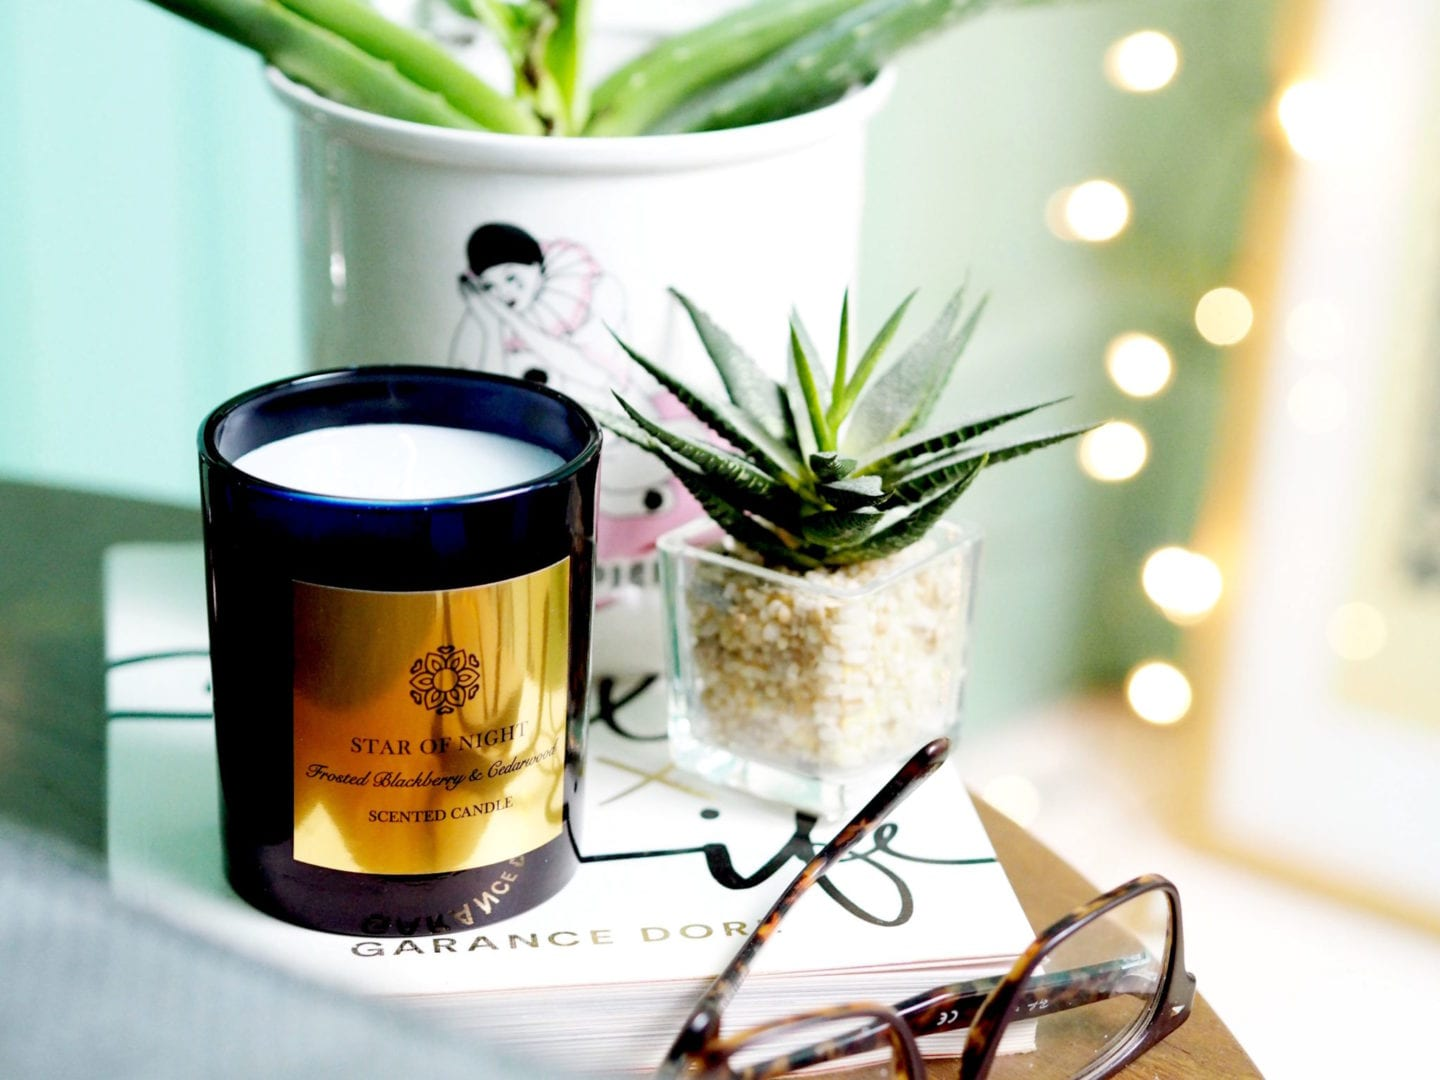 mS-beauty-Frosted-Blackberry-Cedarwood-Scented-Candle